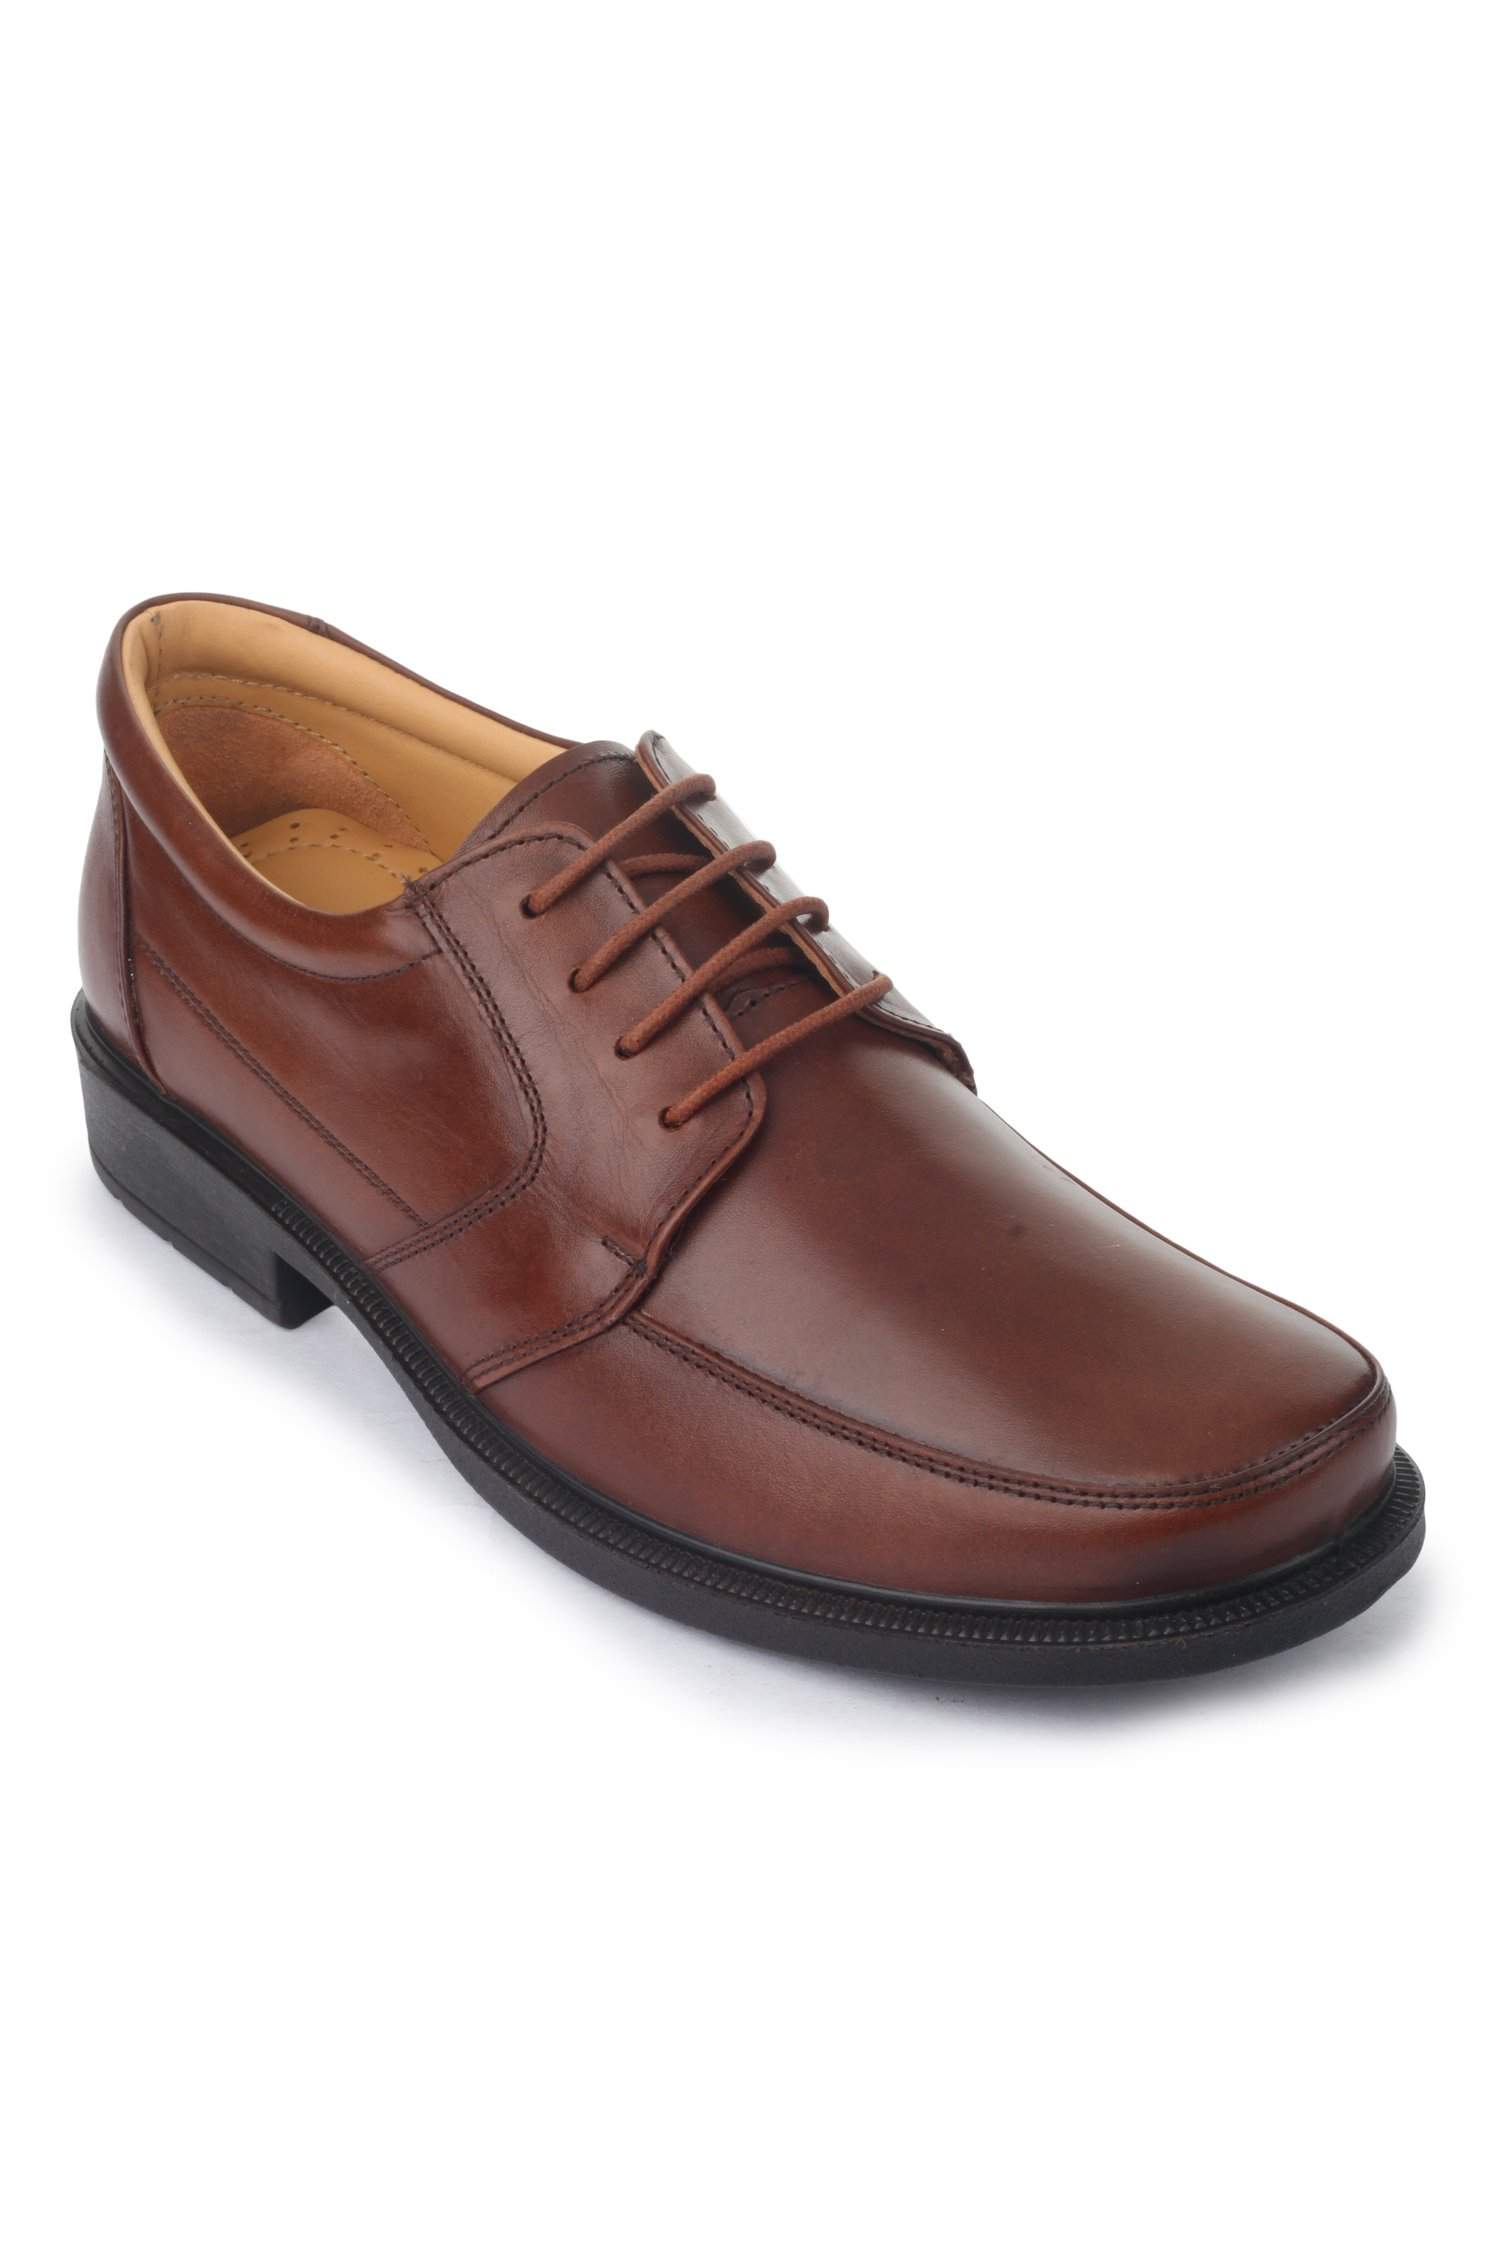 Liberty Mens Classic Round Toe Leather Lined Slip On Dress Laceup Shoes, Brown, 7.5 D(M) US